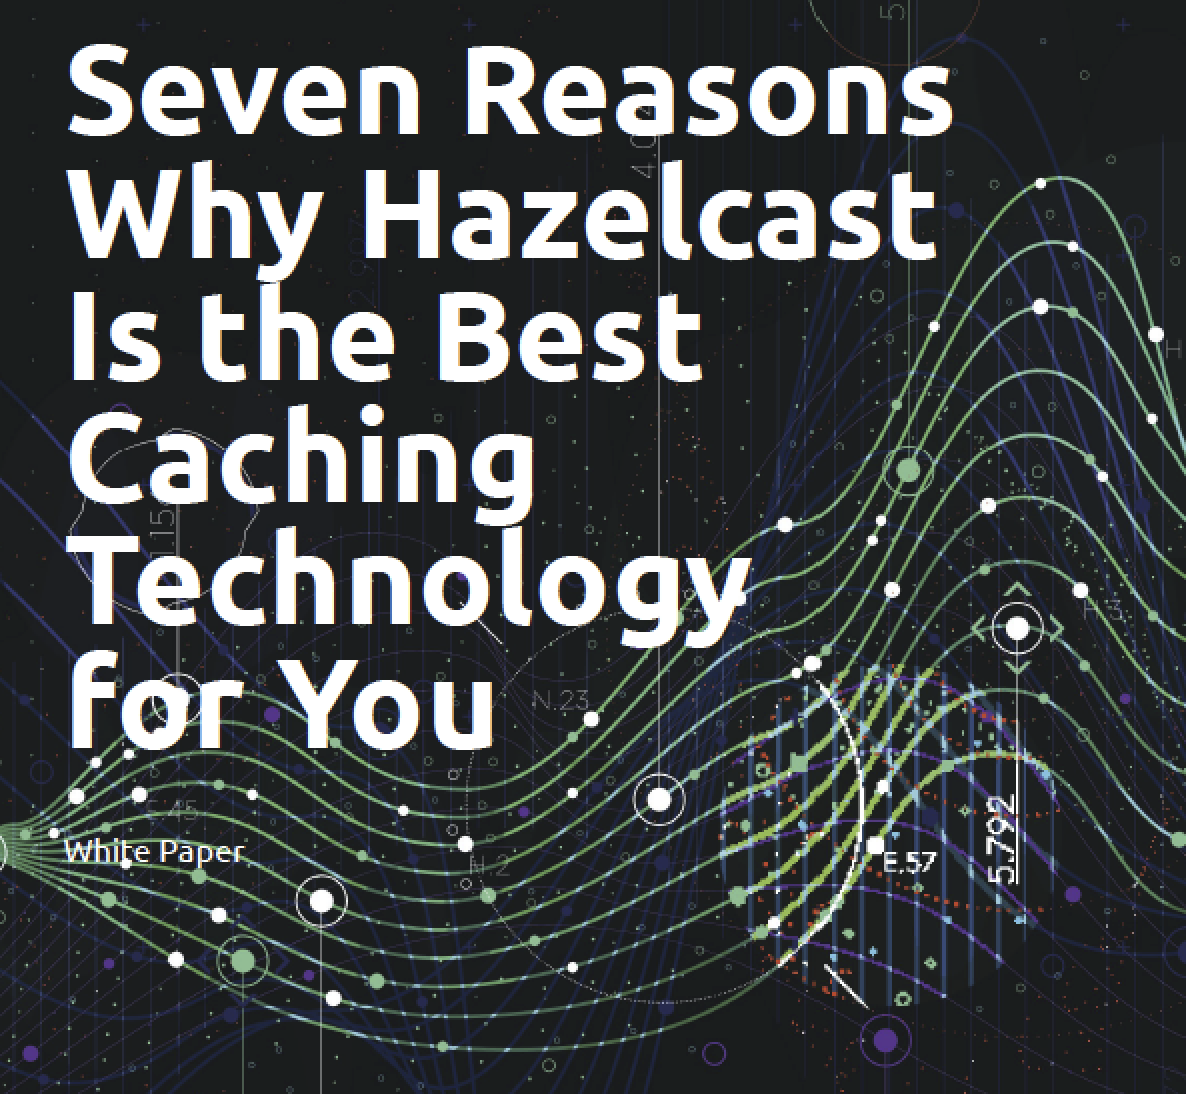 Seven Reasons Hazelcast Is the Best Caching Technology